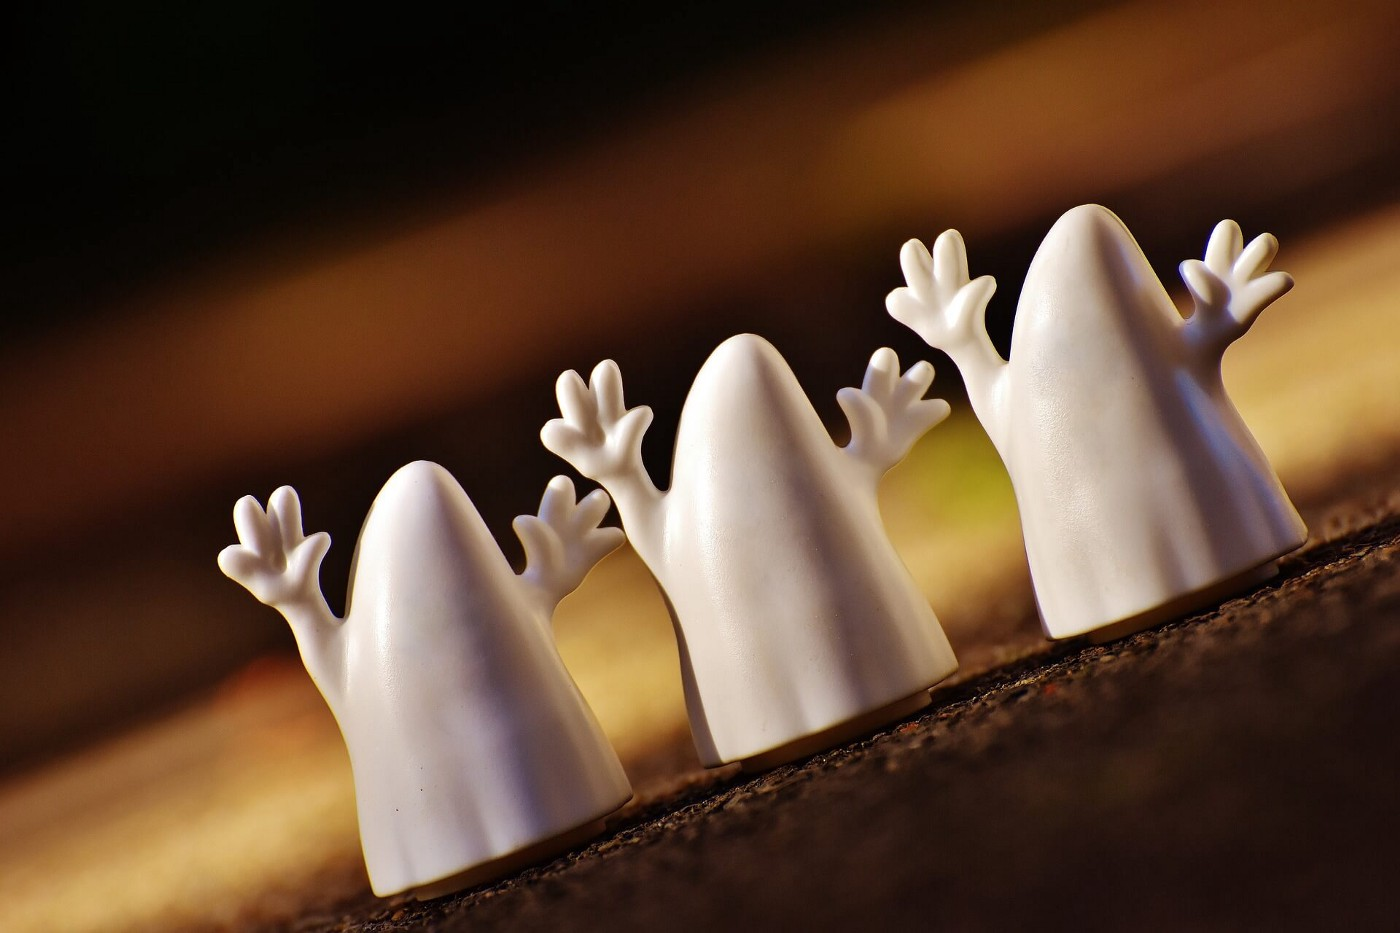 three toy ghosts with arms raised in a row